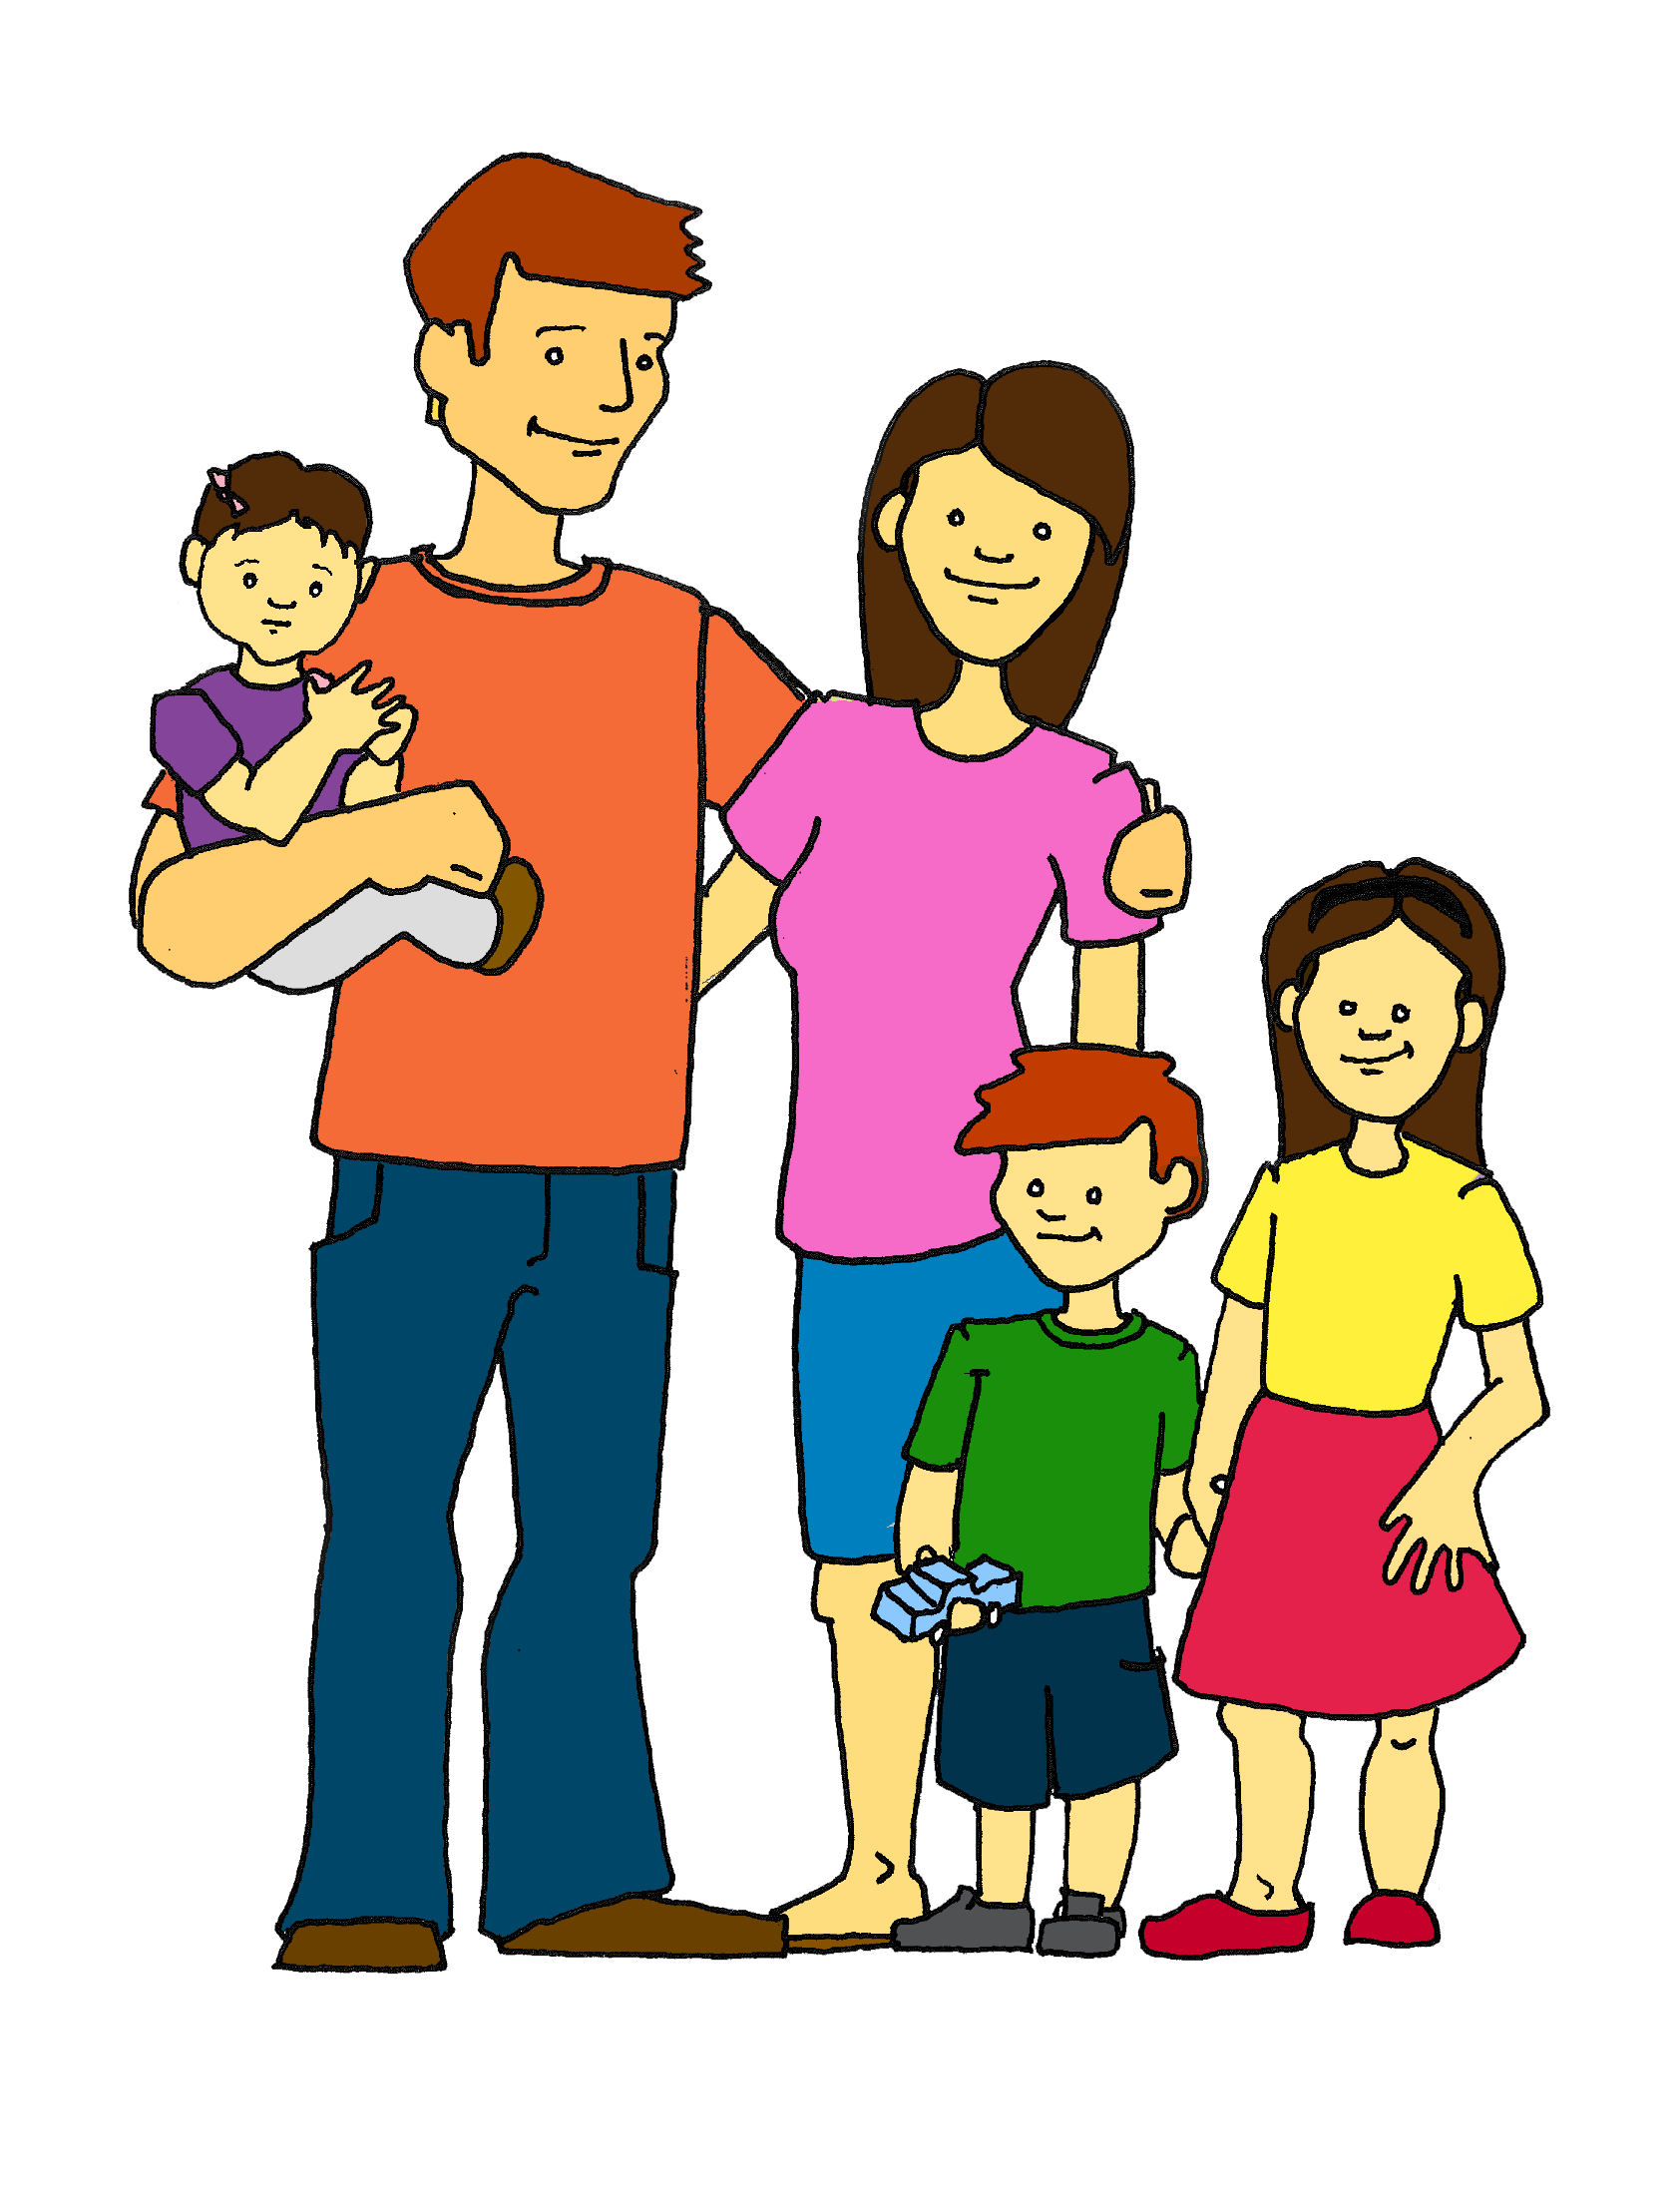 Short clipart family 5. Members image group clip